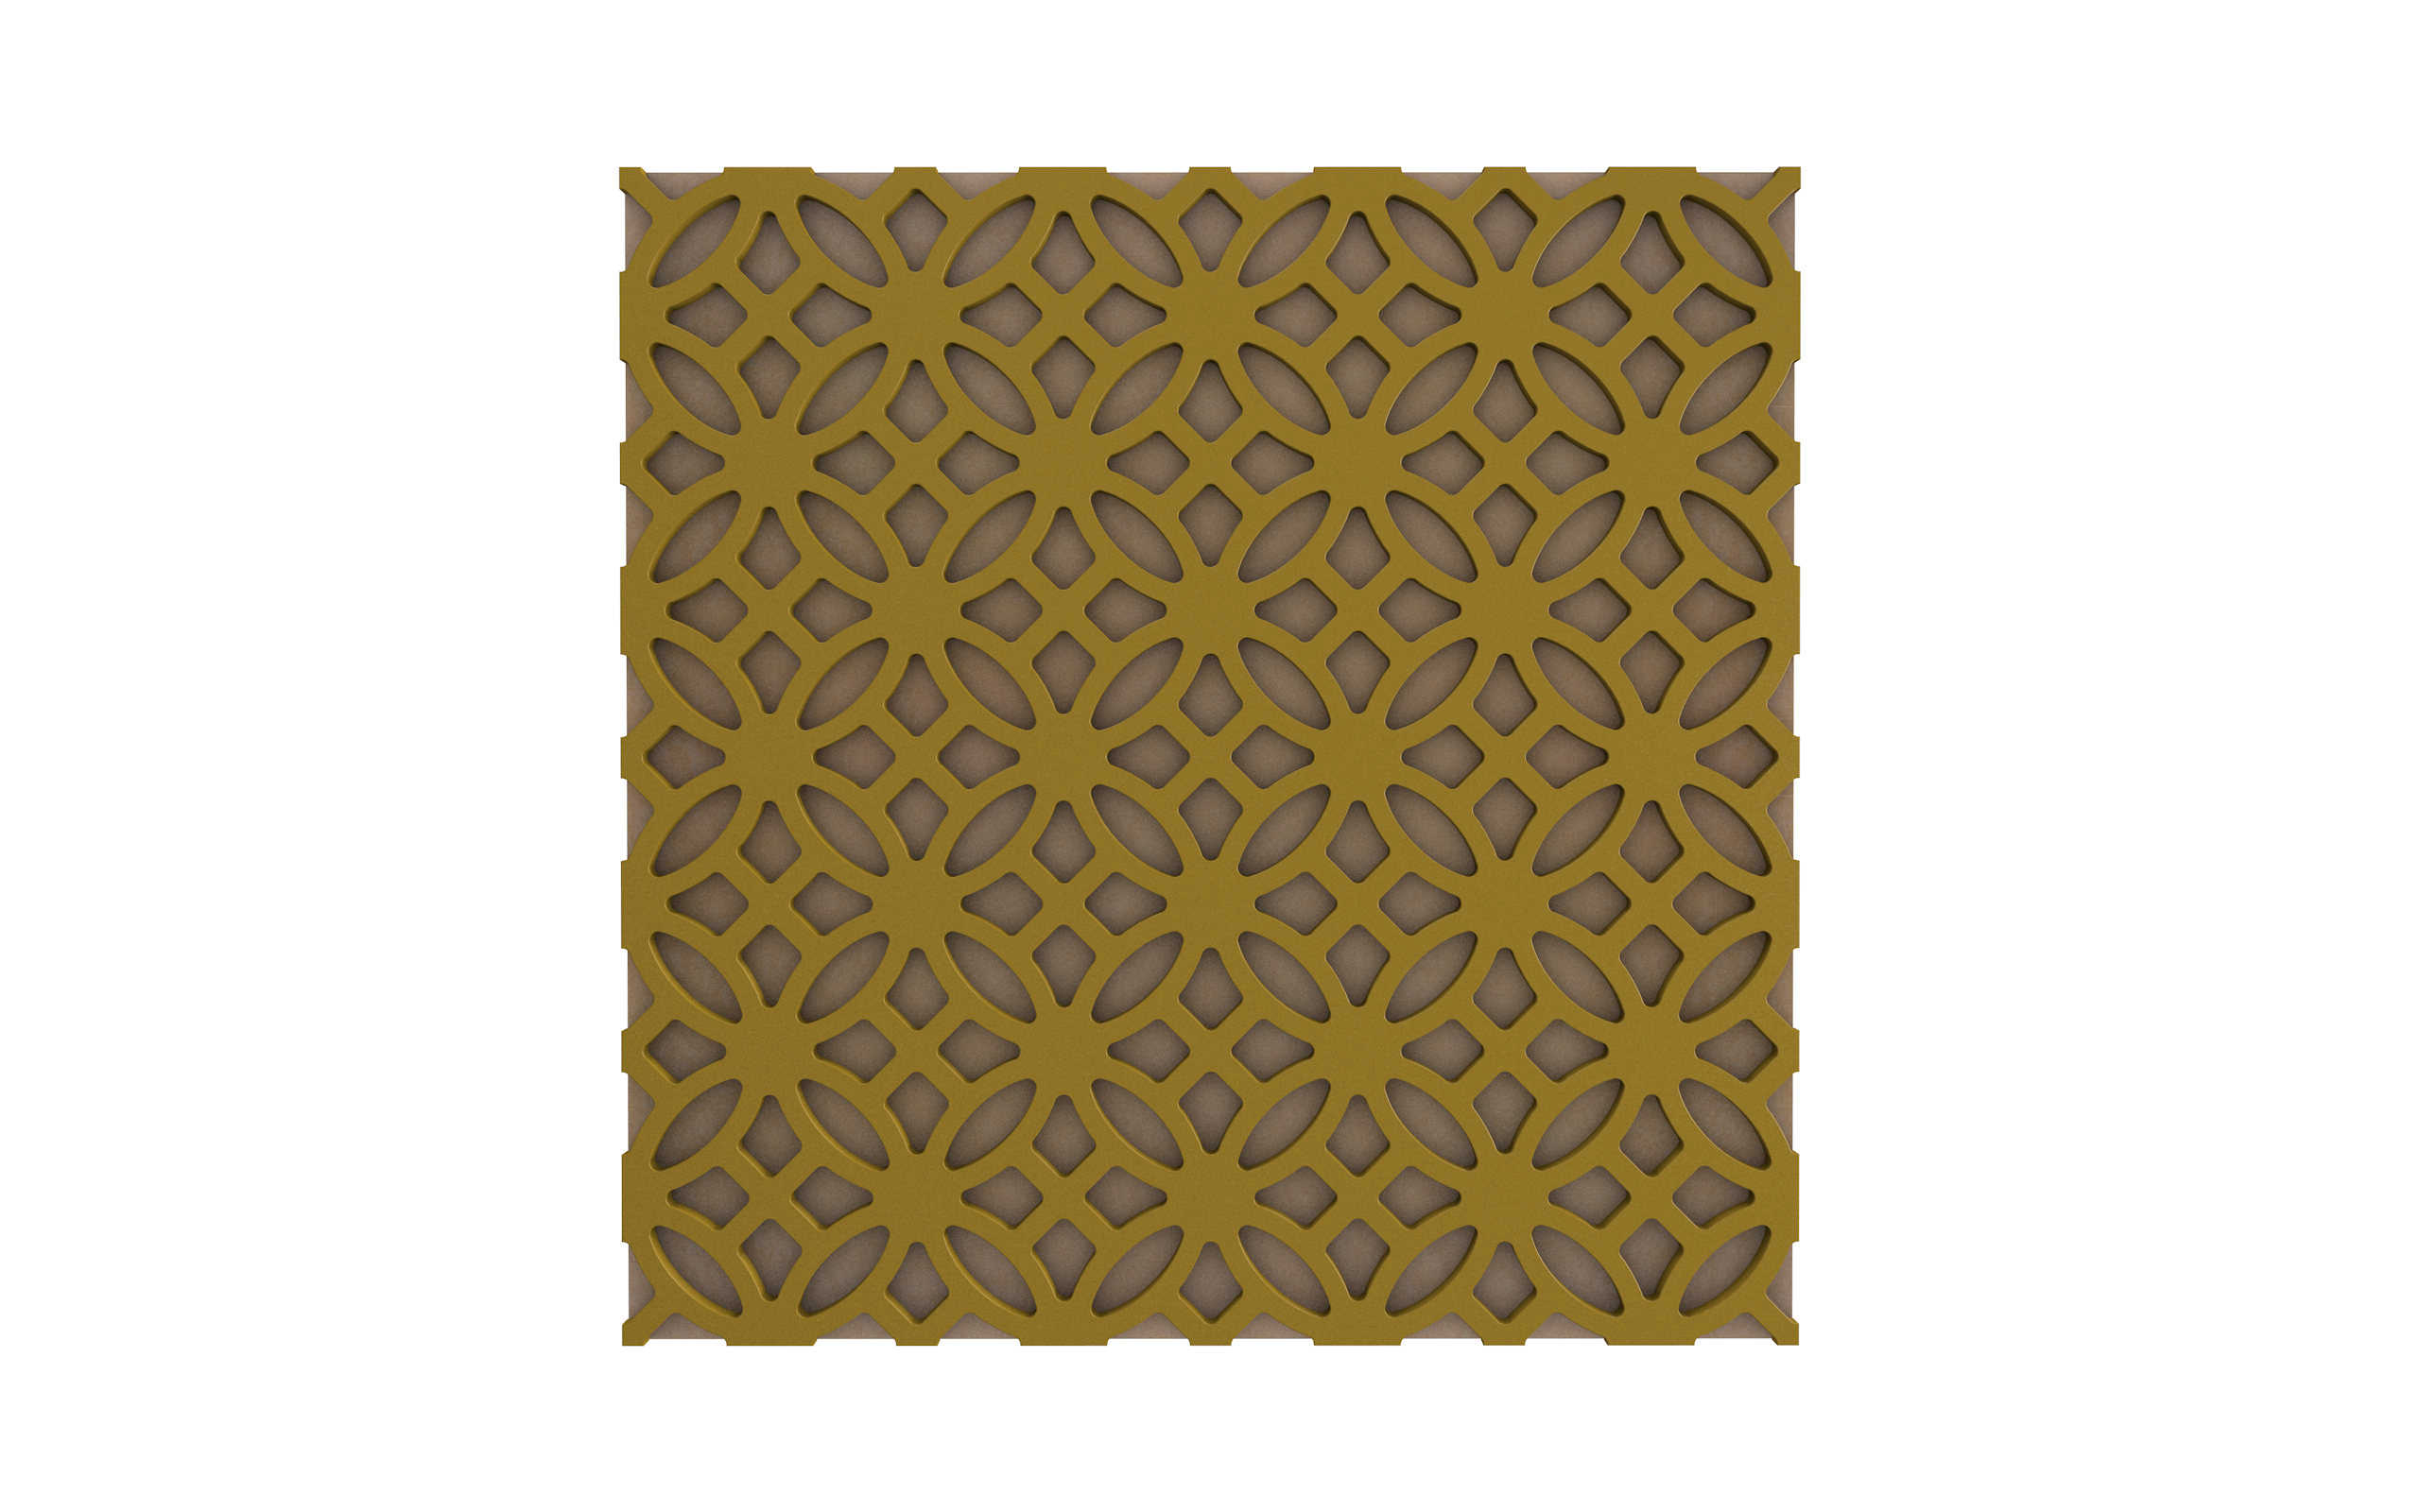 Vicoustic's Mirage pattern with gold frame and beige fabric.